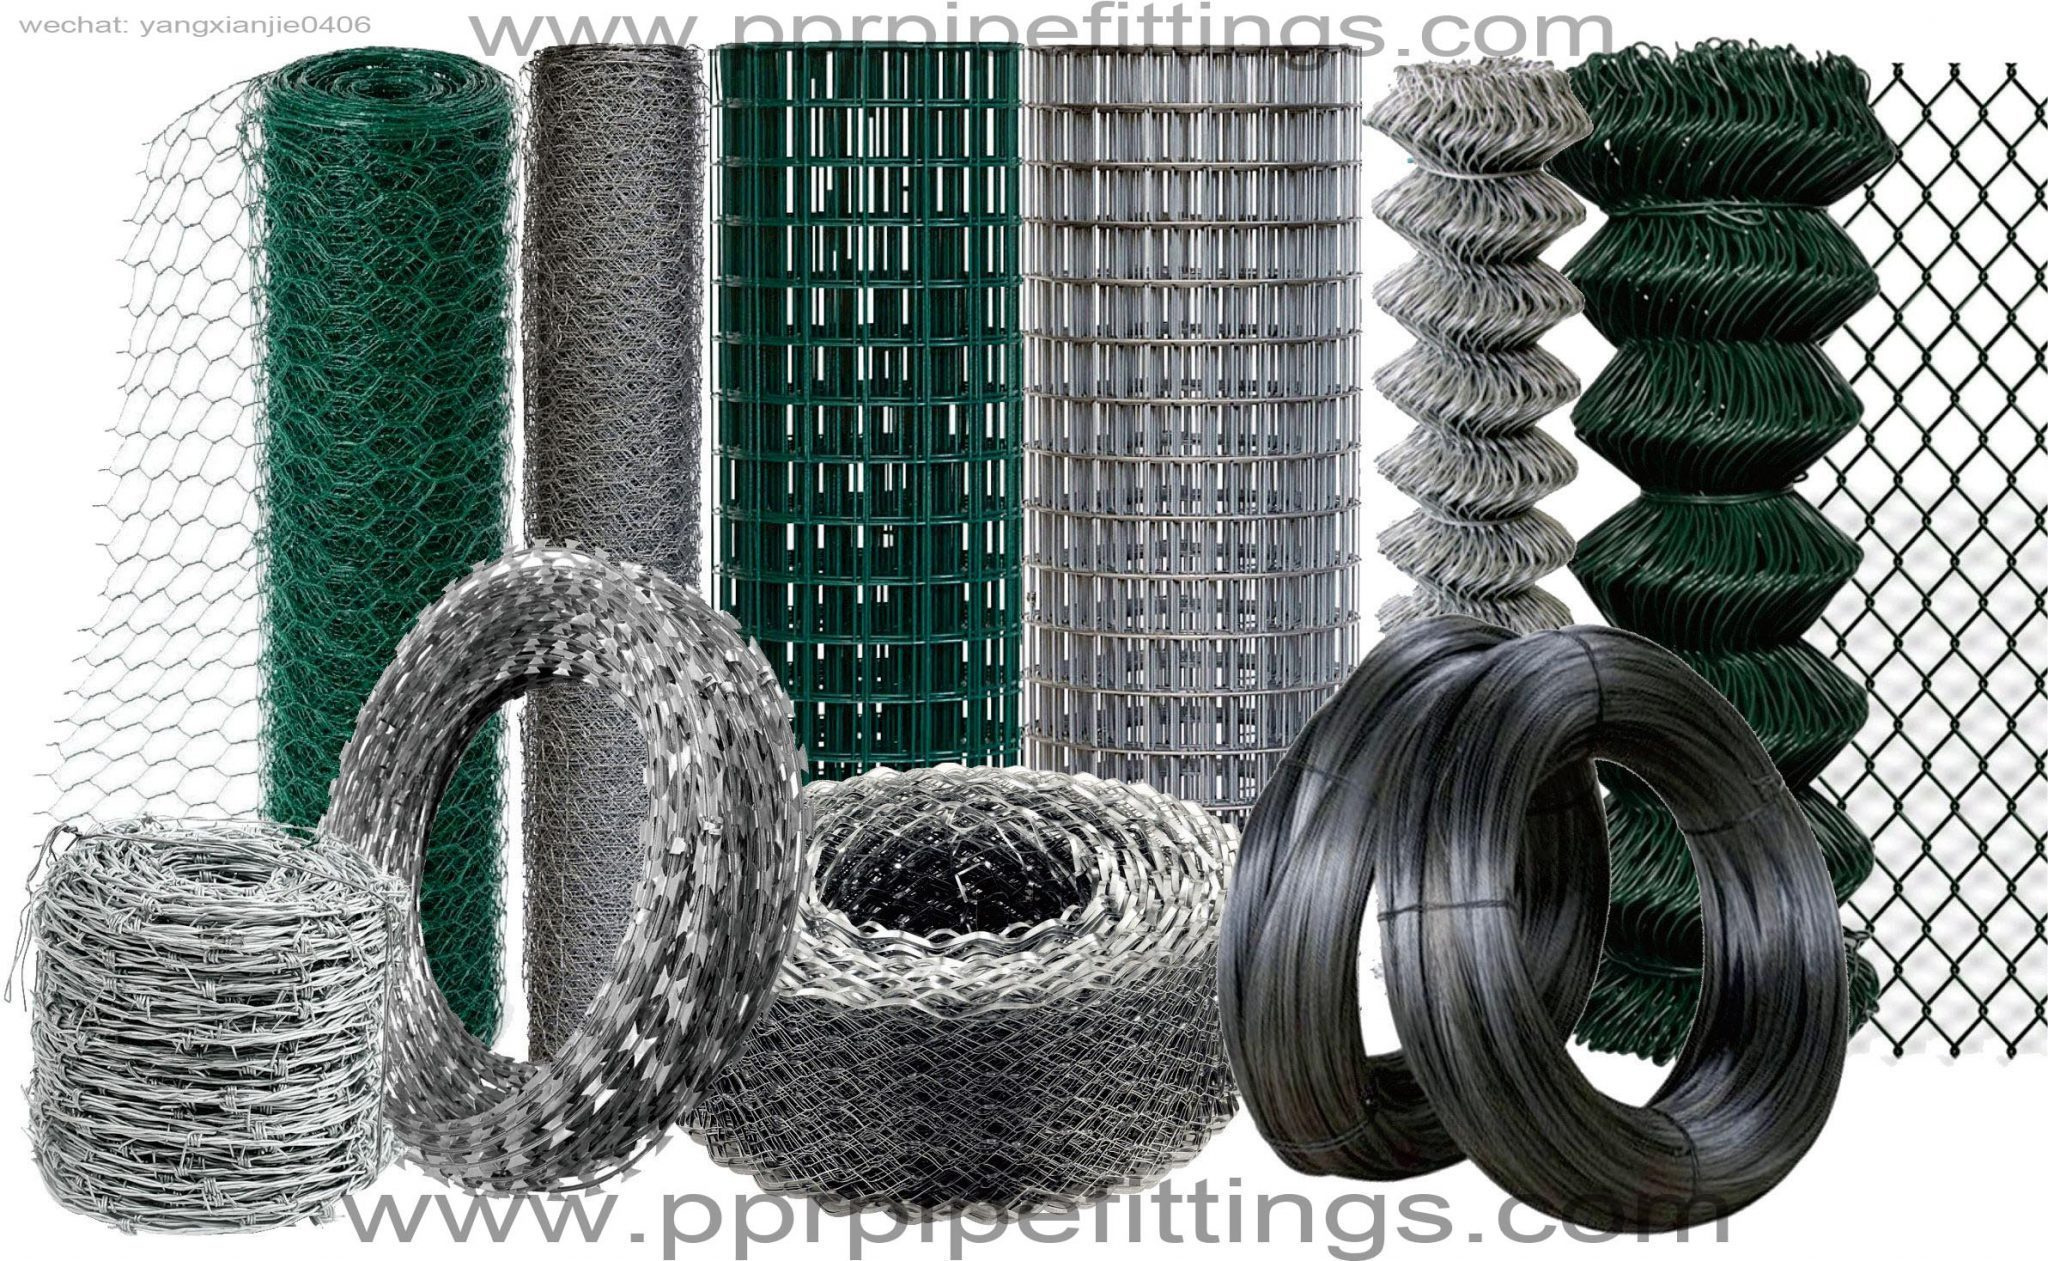 Barbed Wire,Razor Wire Mes, Chain Link Fence, Tile Trims, Expanded Metal Mesh